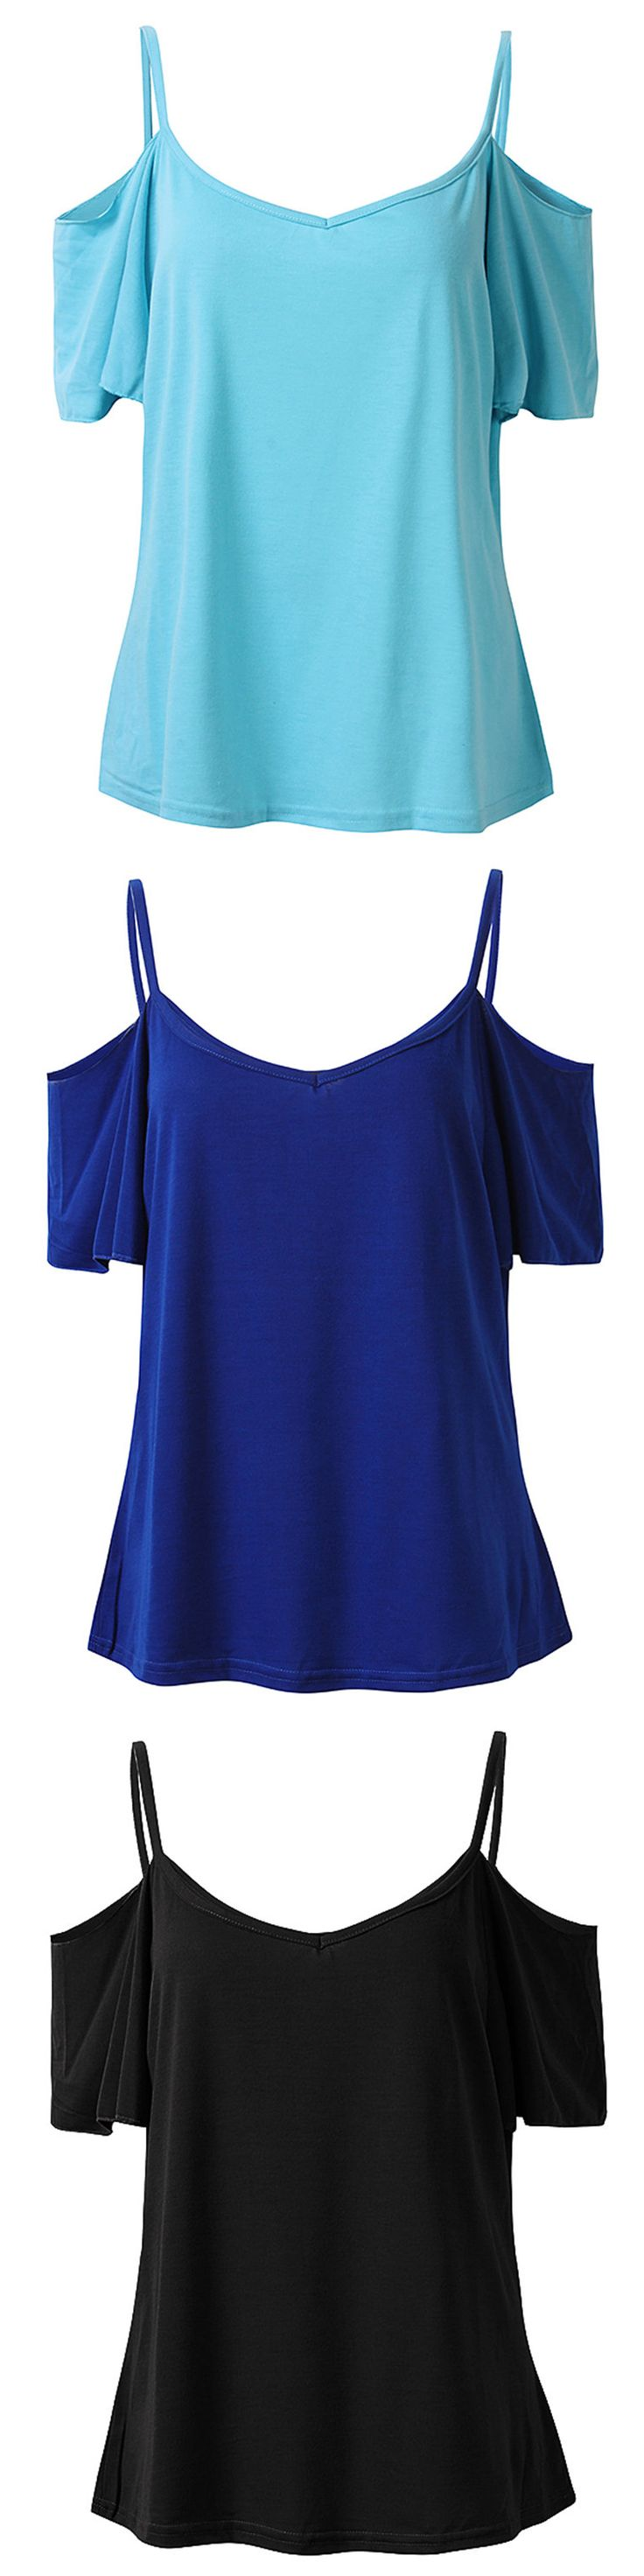 US$7.62 Sexy Women Off Shoulder Strappy Short Sleeve V Neck Cotton Polyester T-shirt